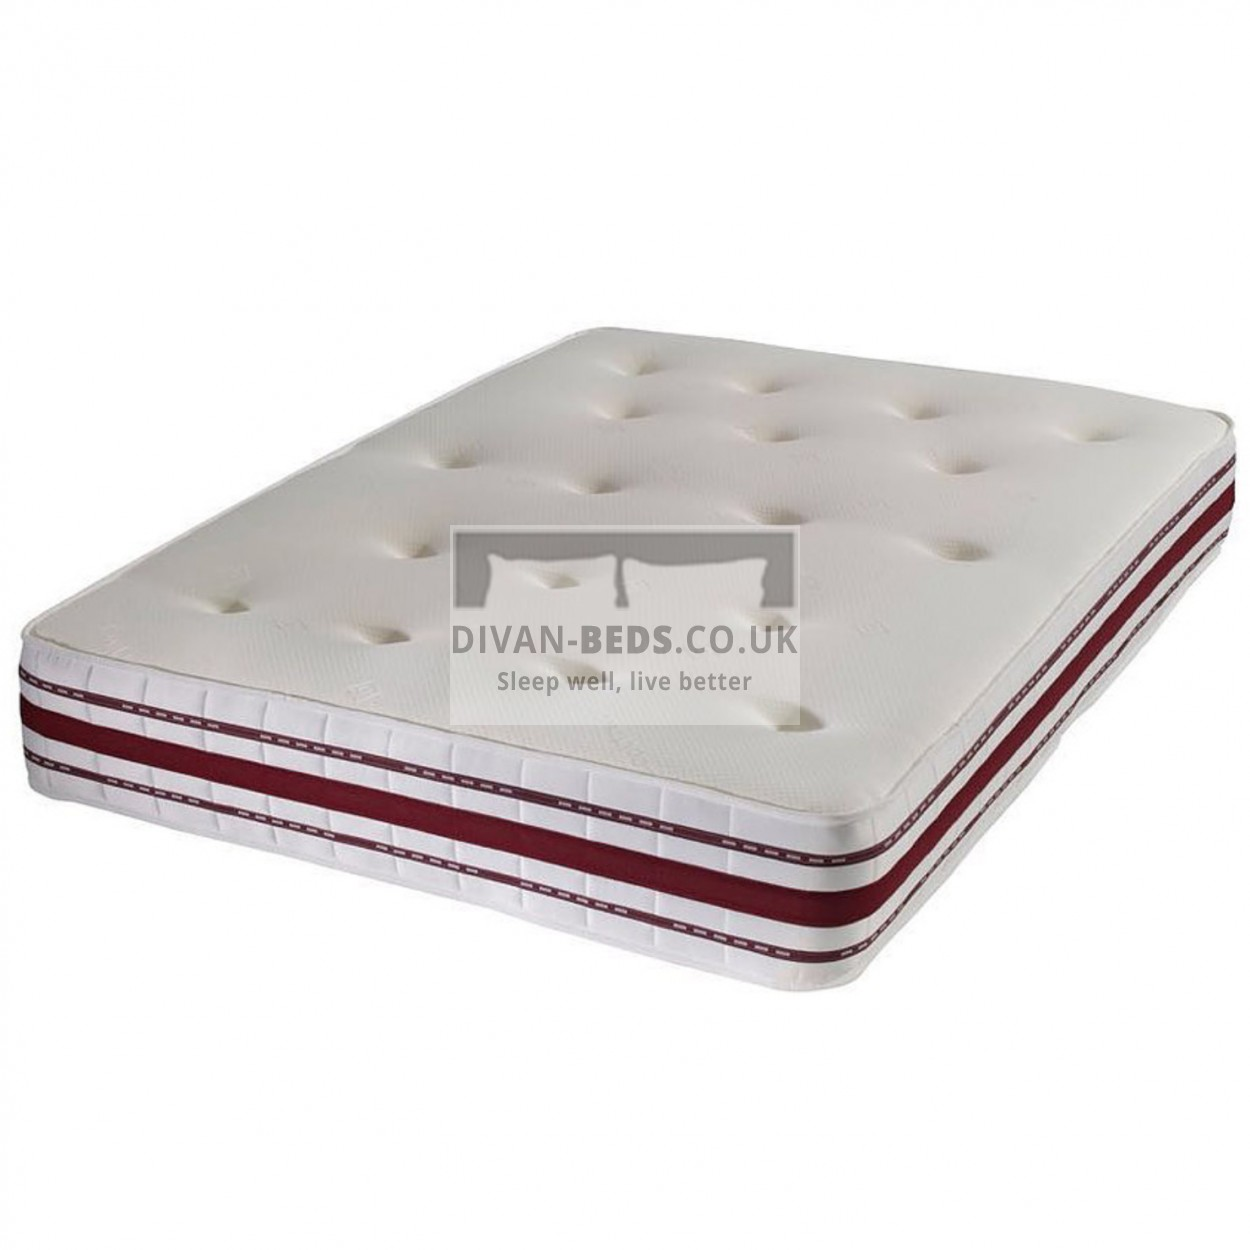 Spring And Memory Foam Mattress 2500 Pocket Spring High Density Memory Foam Mattress With